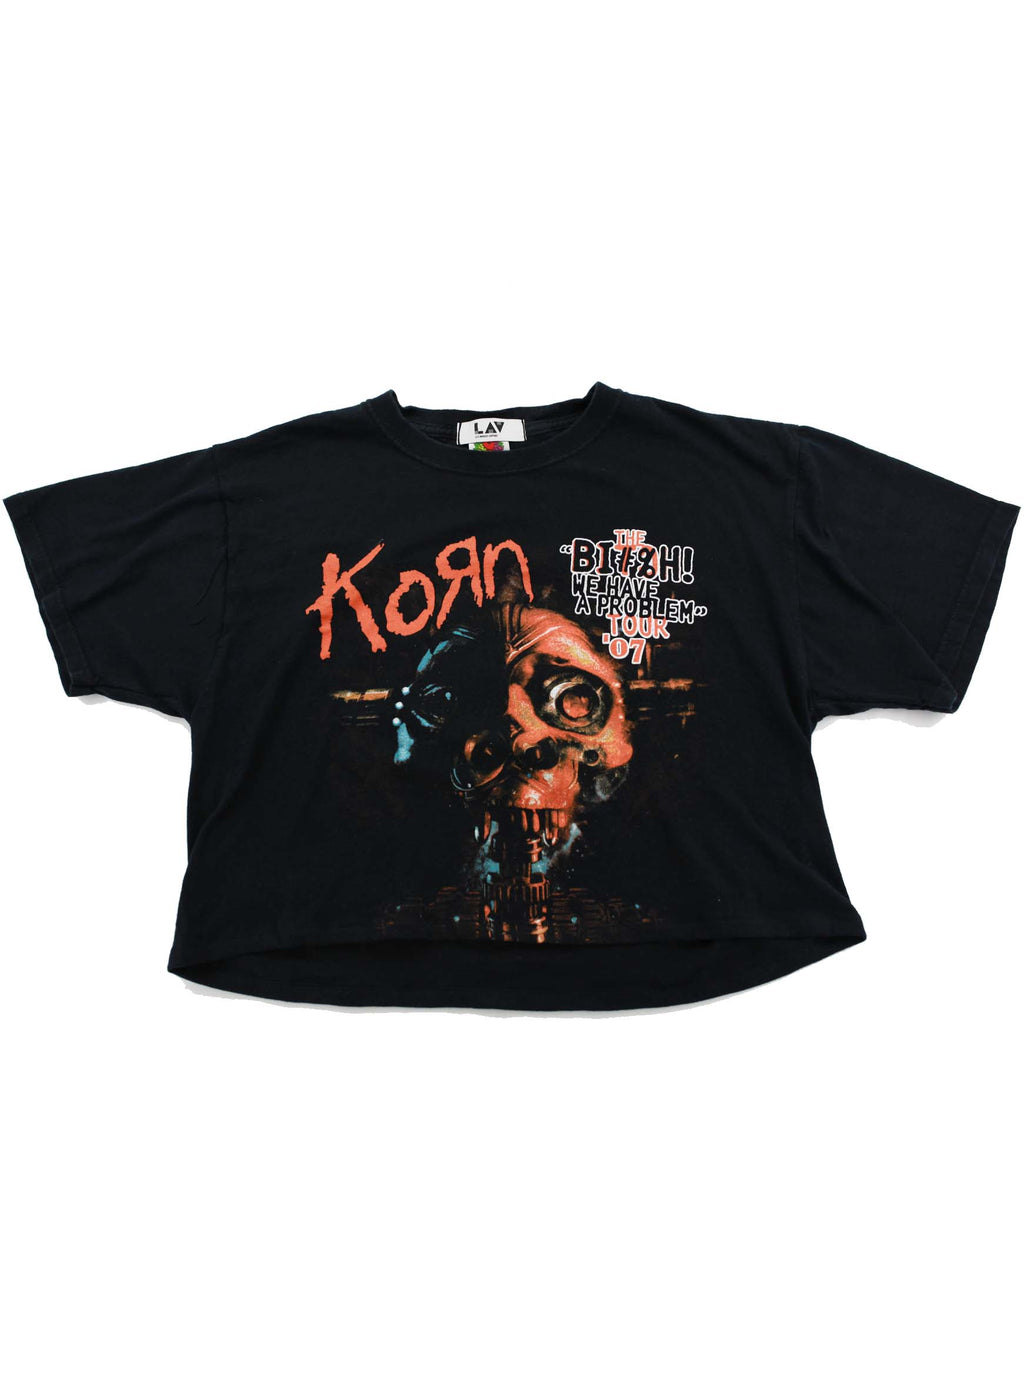 """THE BI#H! WE HAVE A PROBLEM"" KORN TOUR '07 Cropped Band Tee"